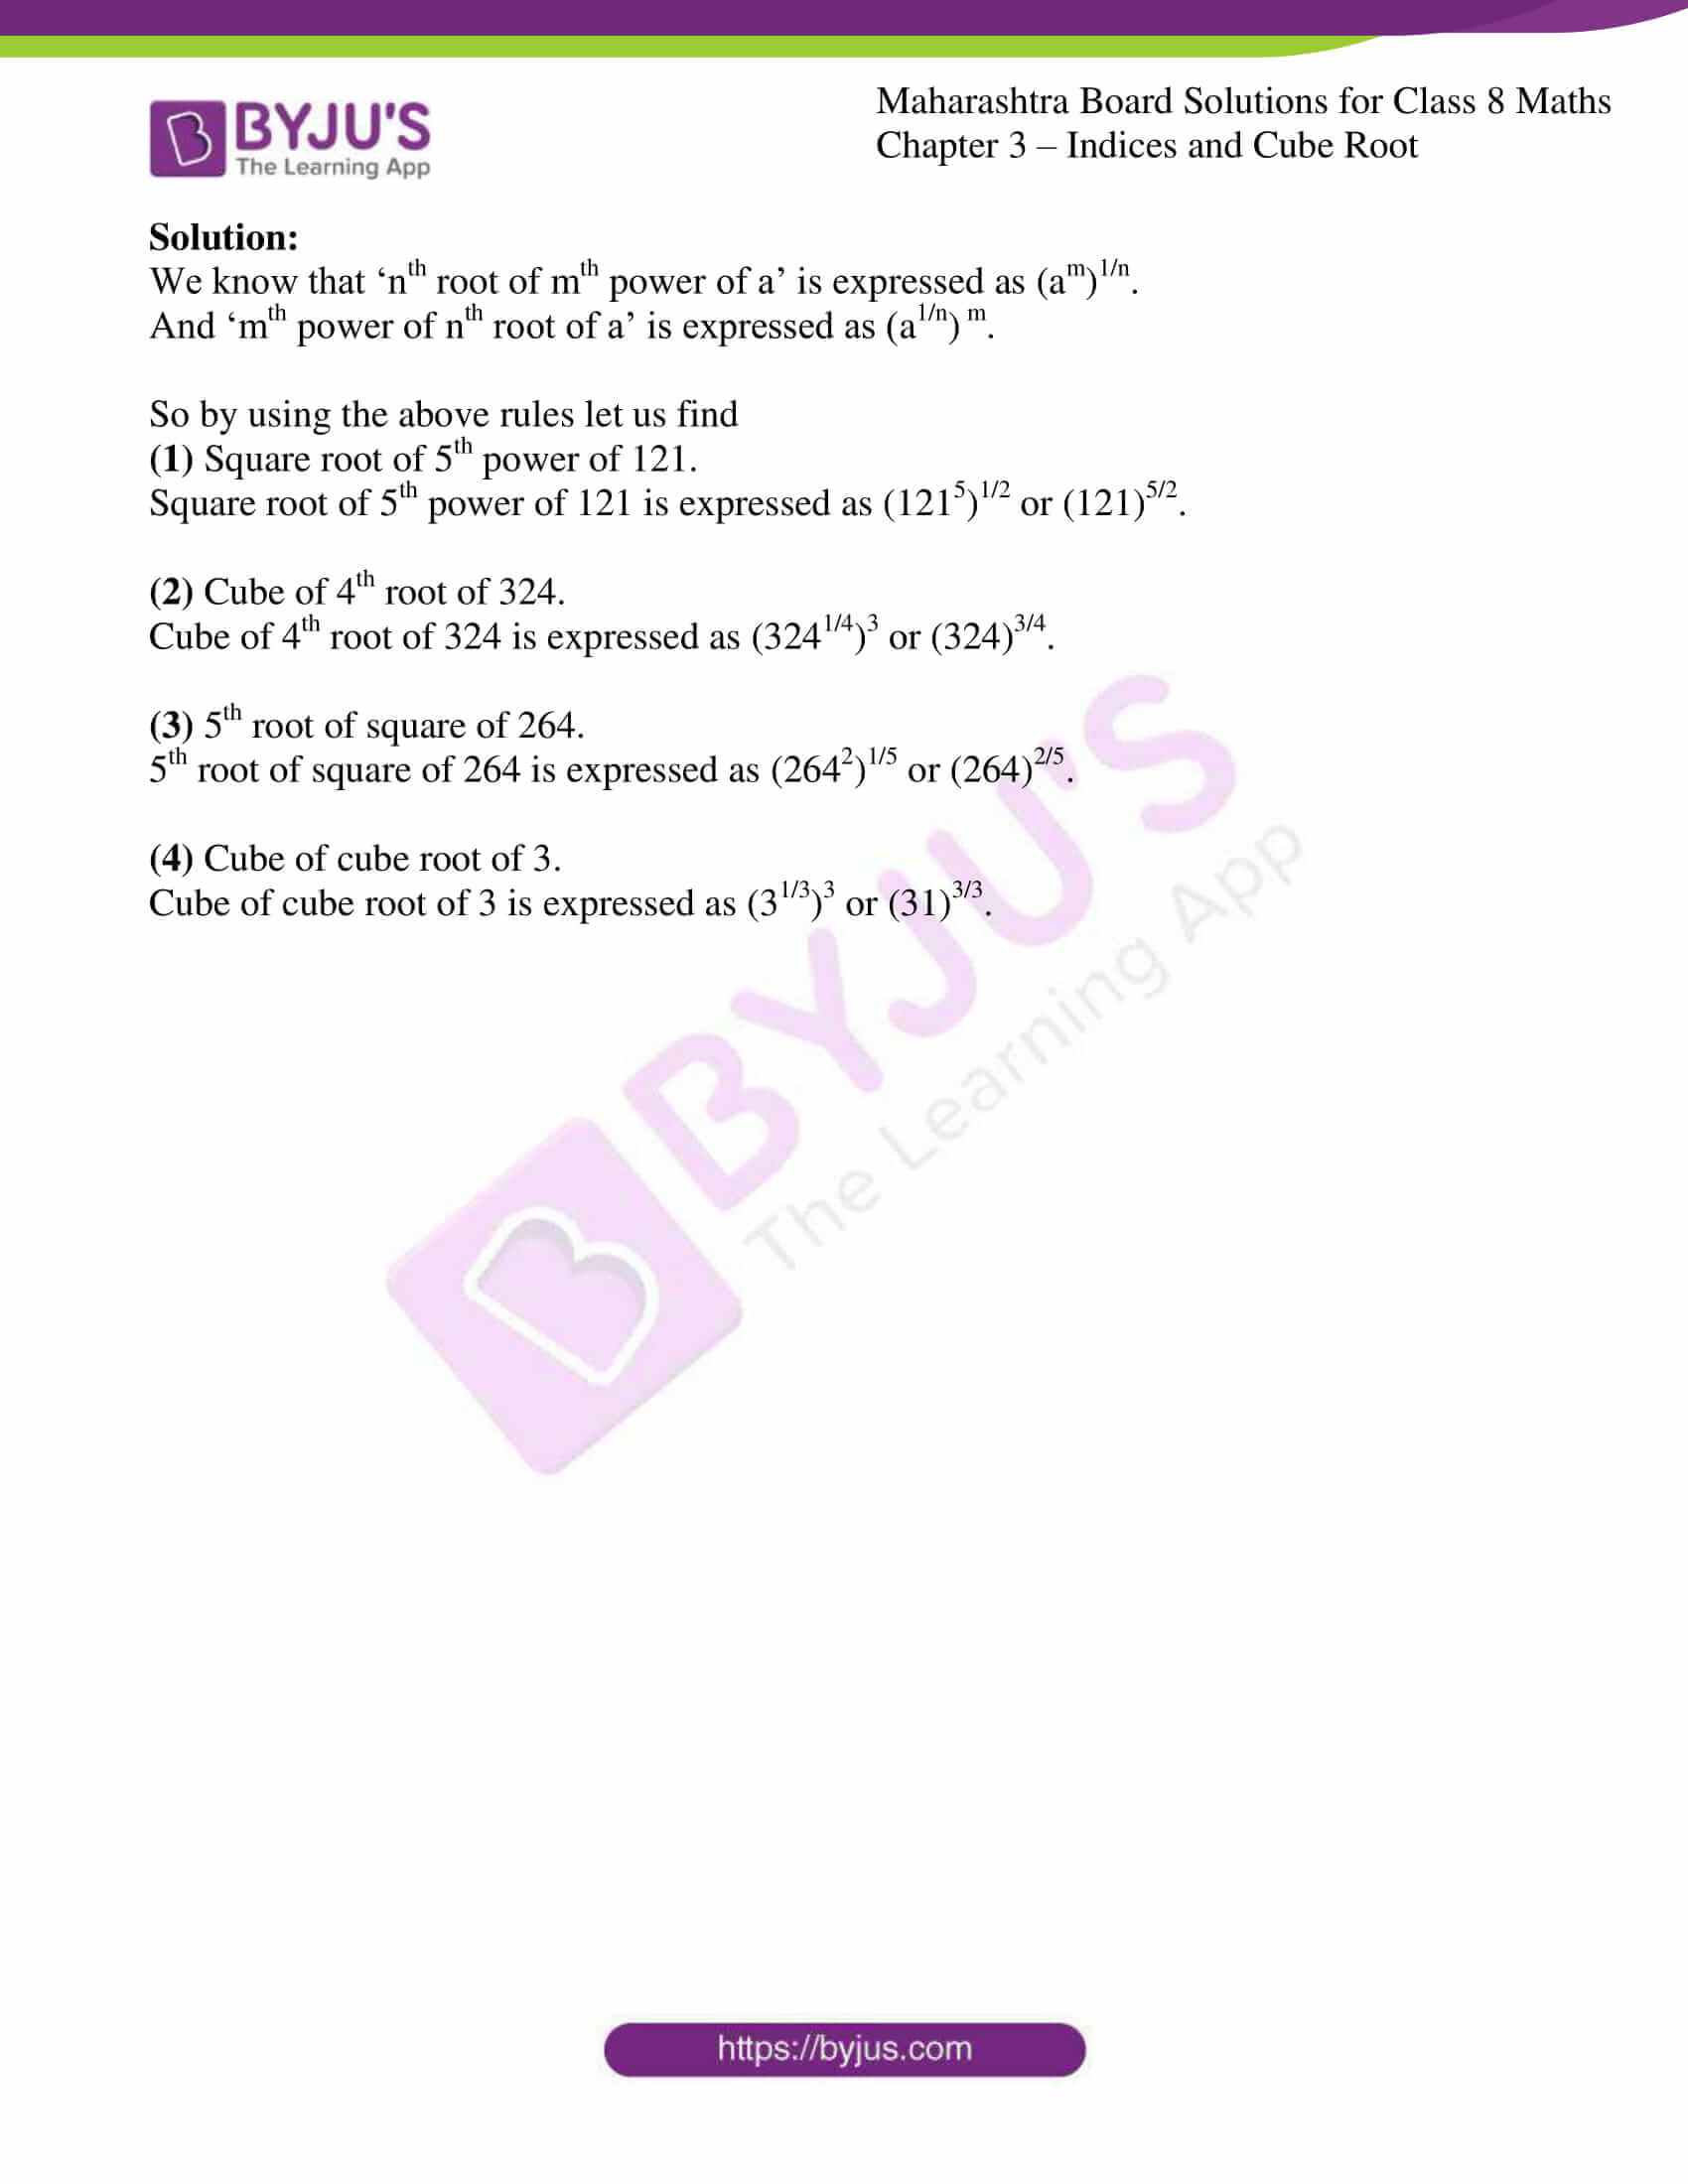 msbshse sol for class 8 maths chapter 3 4